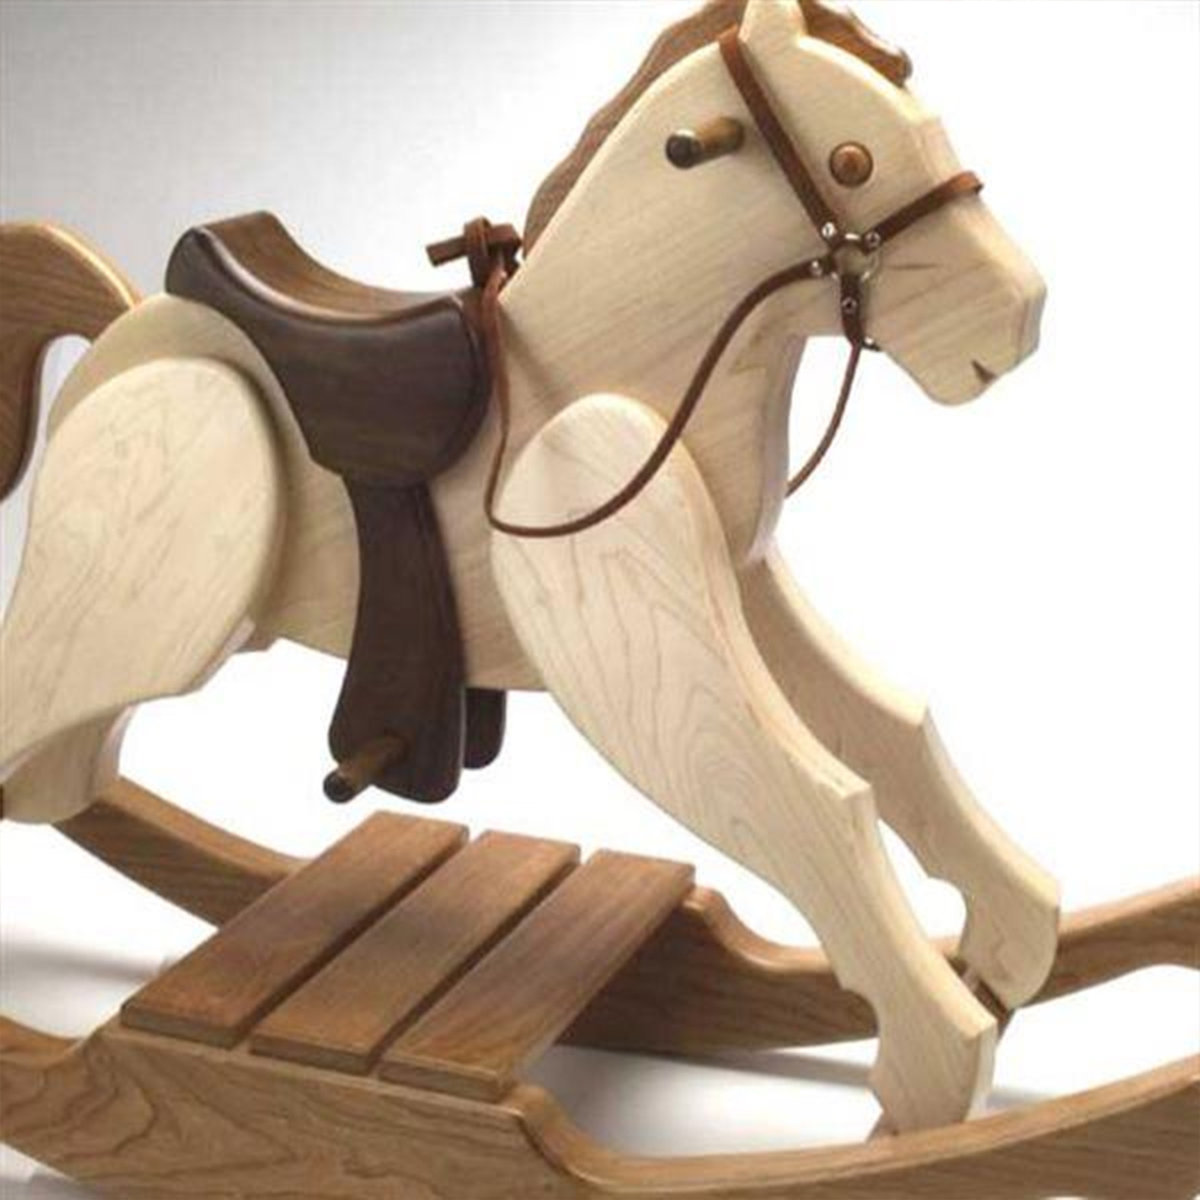 Woodworking Project Paper Plan To Build Rocking Pony